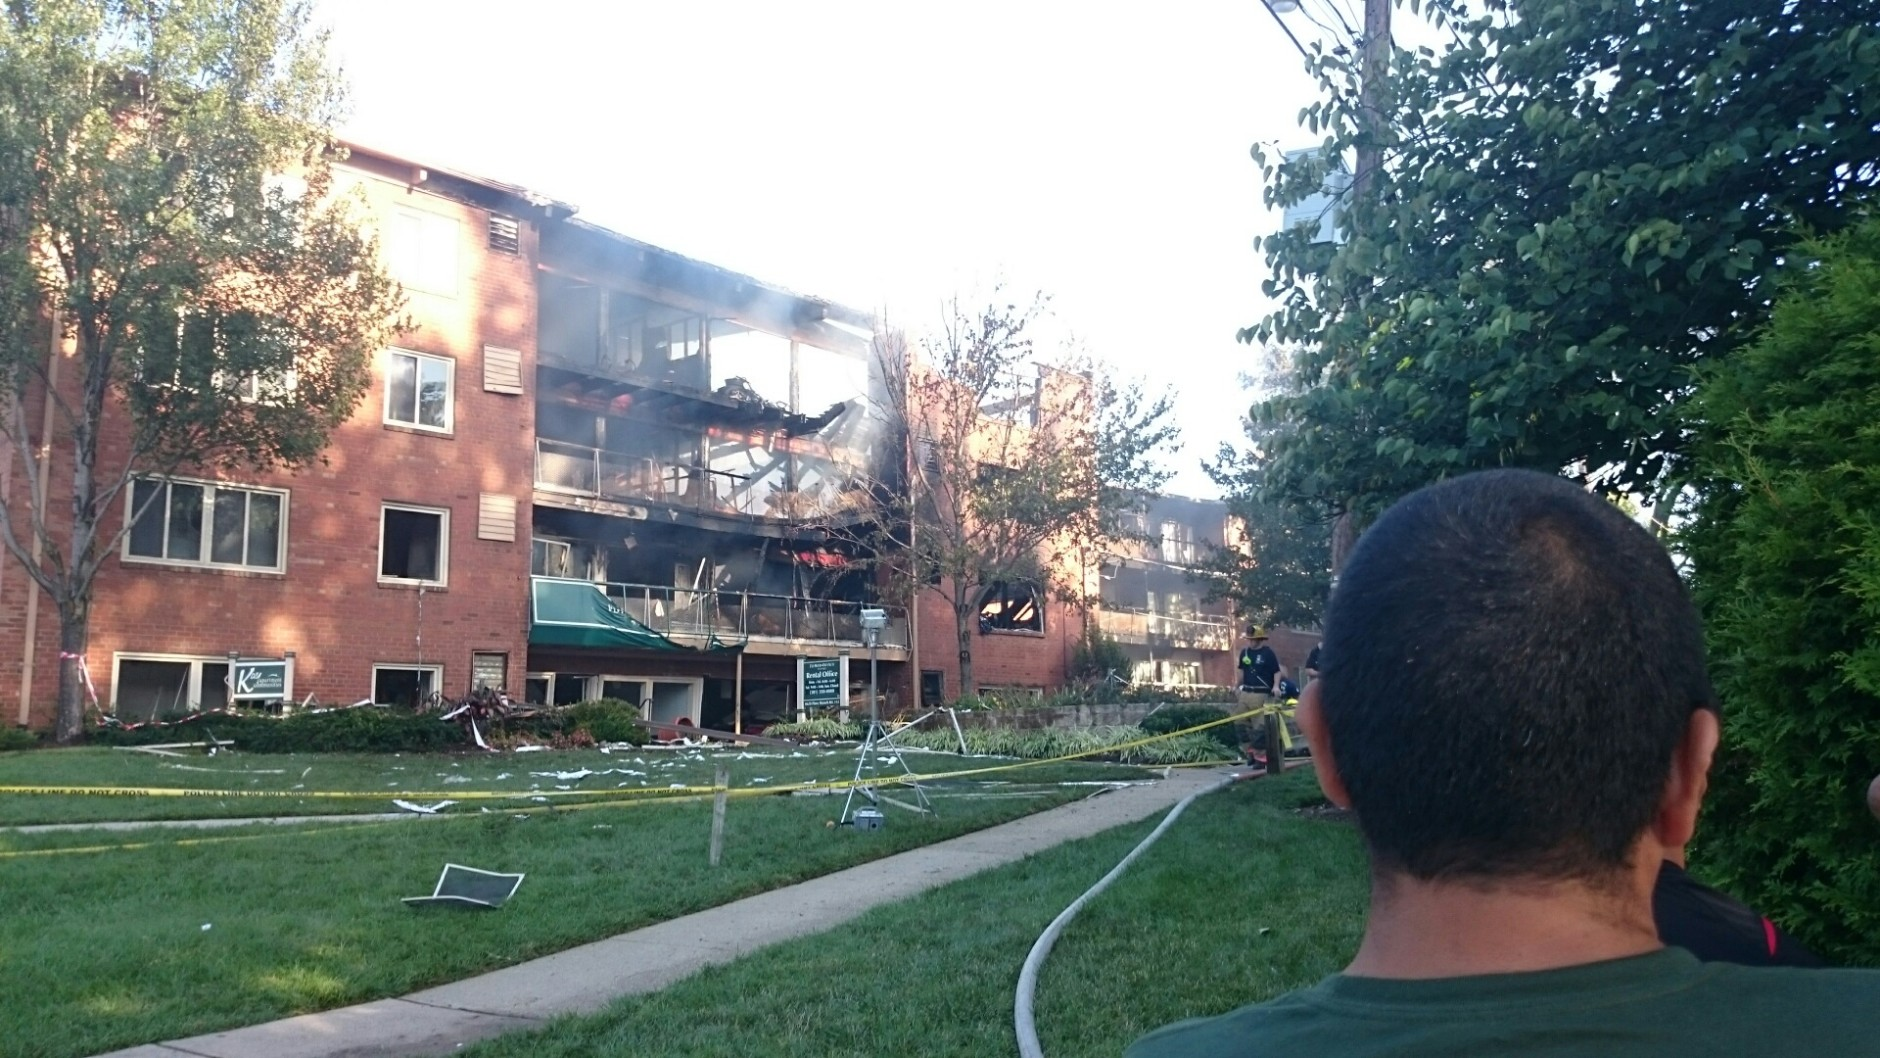 The aftermath of the explosion and fire at the Flower Branch apartment complex. (WTOP/Dennis Foley)